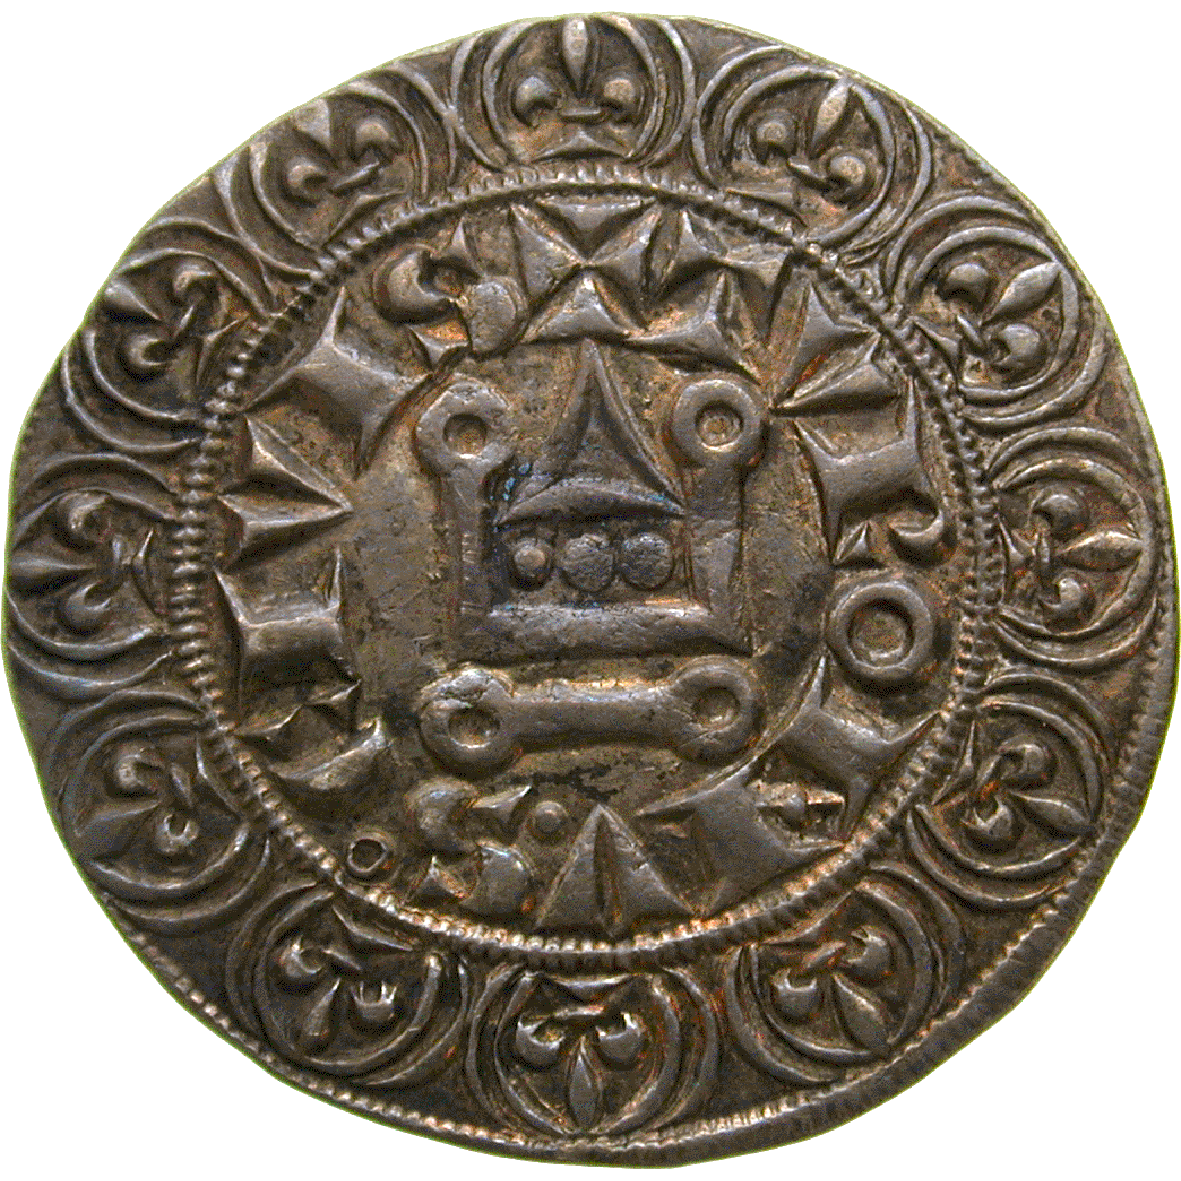 Kingdom of France, Louis IX, Gros tournois (reverse)